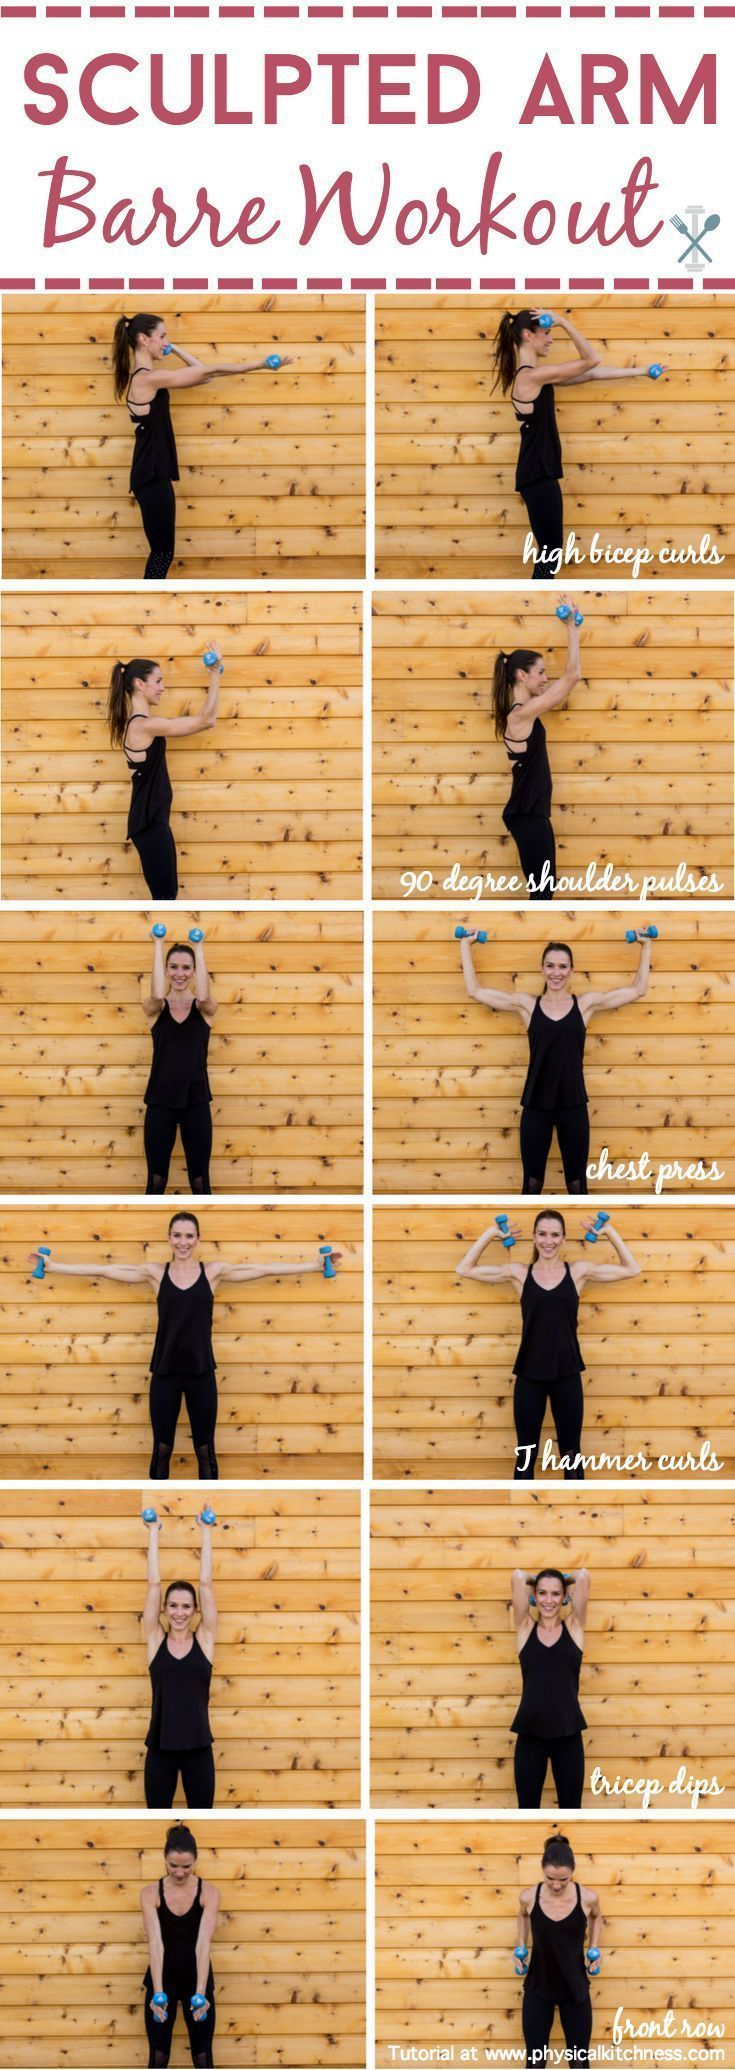 Sculpt and tone your arms in ways you never imagined with this barre inspired arm workout. Little movements with lots of repetition will work arm muscles in miraculous ways! Shaping your biceps, shoulders, and triceps. Home or gym workout!